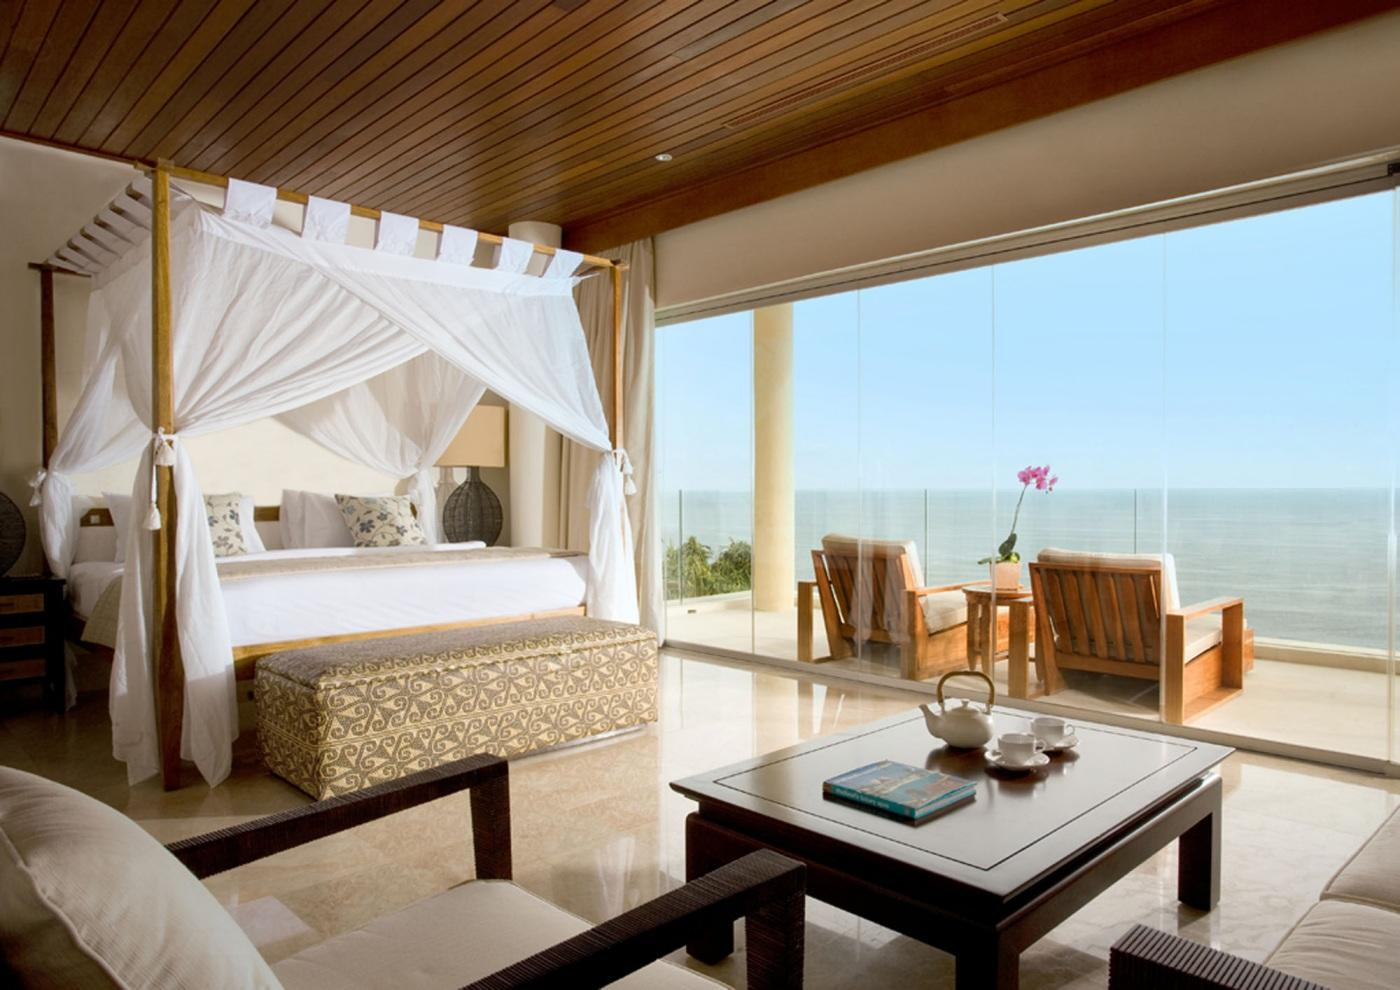 Master Bedroom Luxury Bedrooms Luxury Hotels Photo Luxury